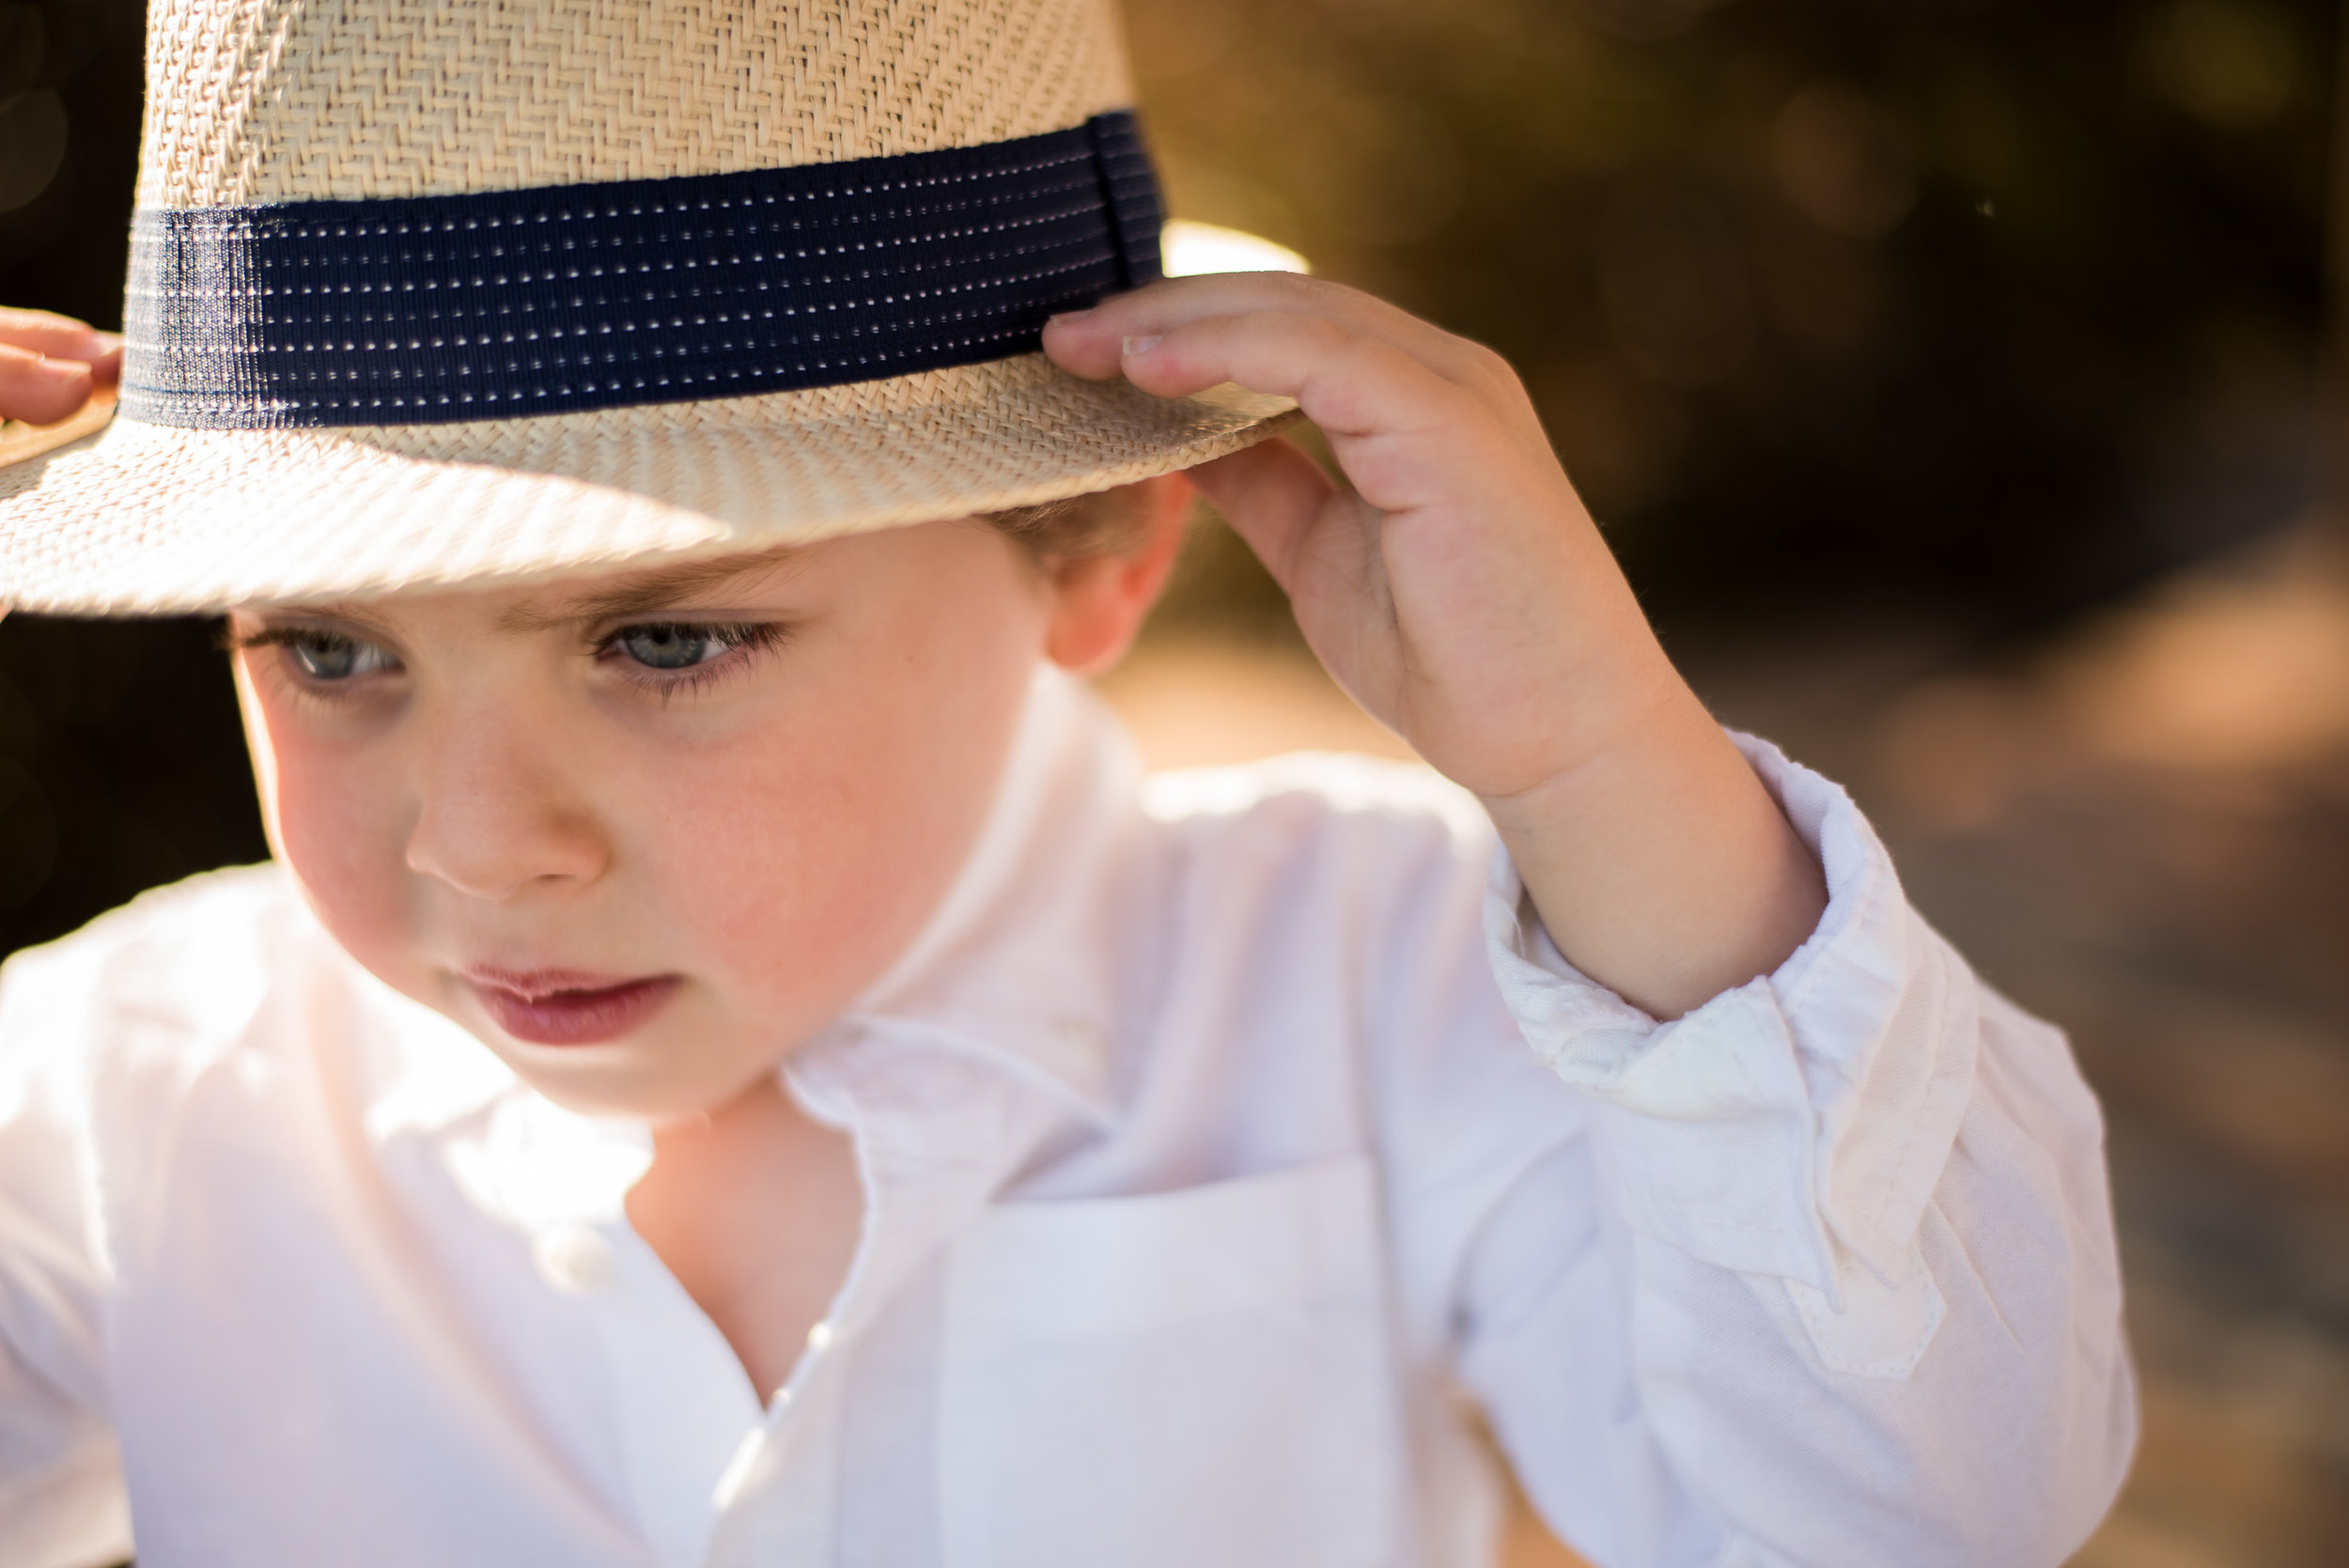 San Francisco Family Photographer, Amanda Anderson Photography, What to wear